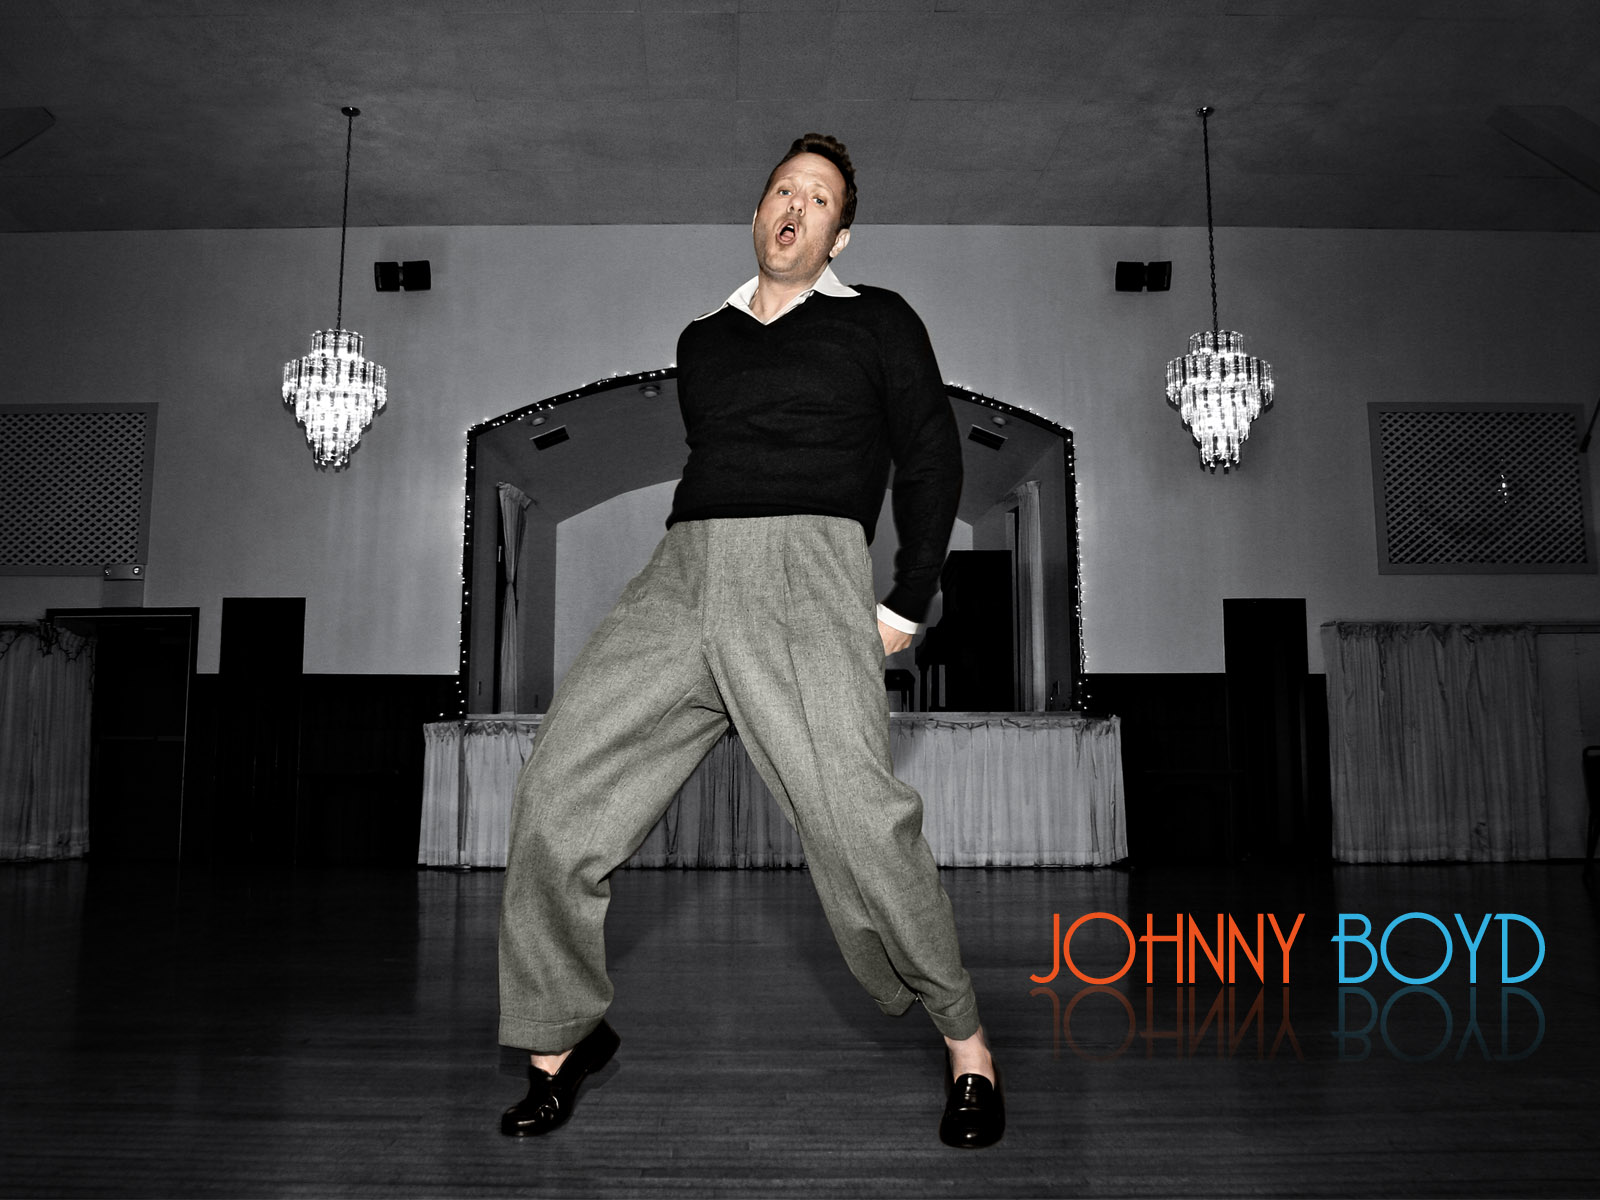 Johnny_Boyd_Wallpaper4_1600x1200.jpg